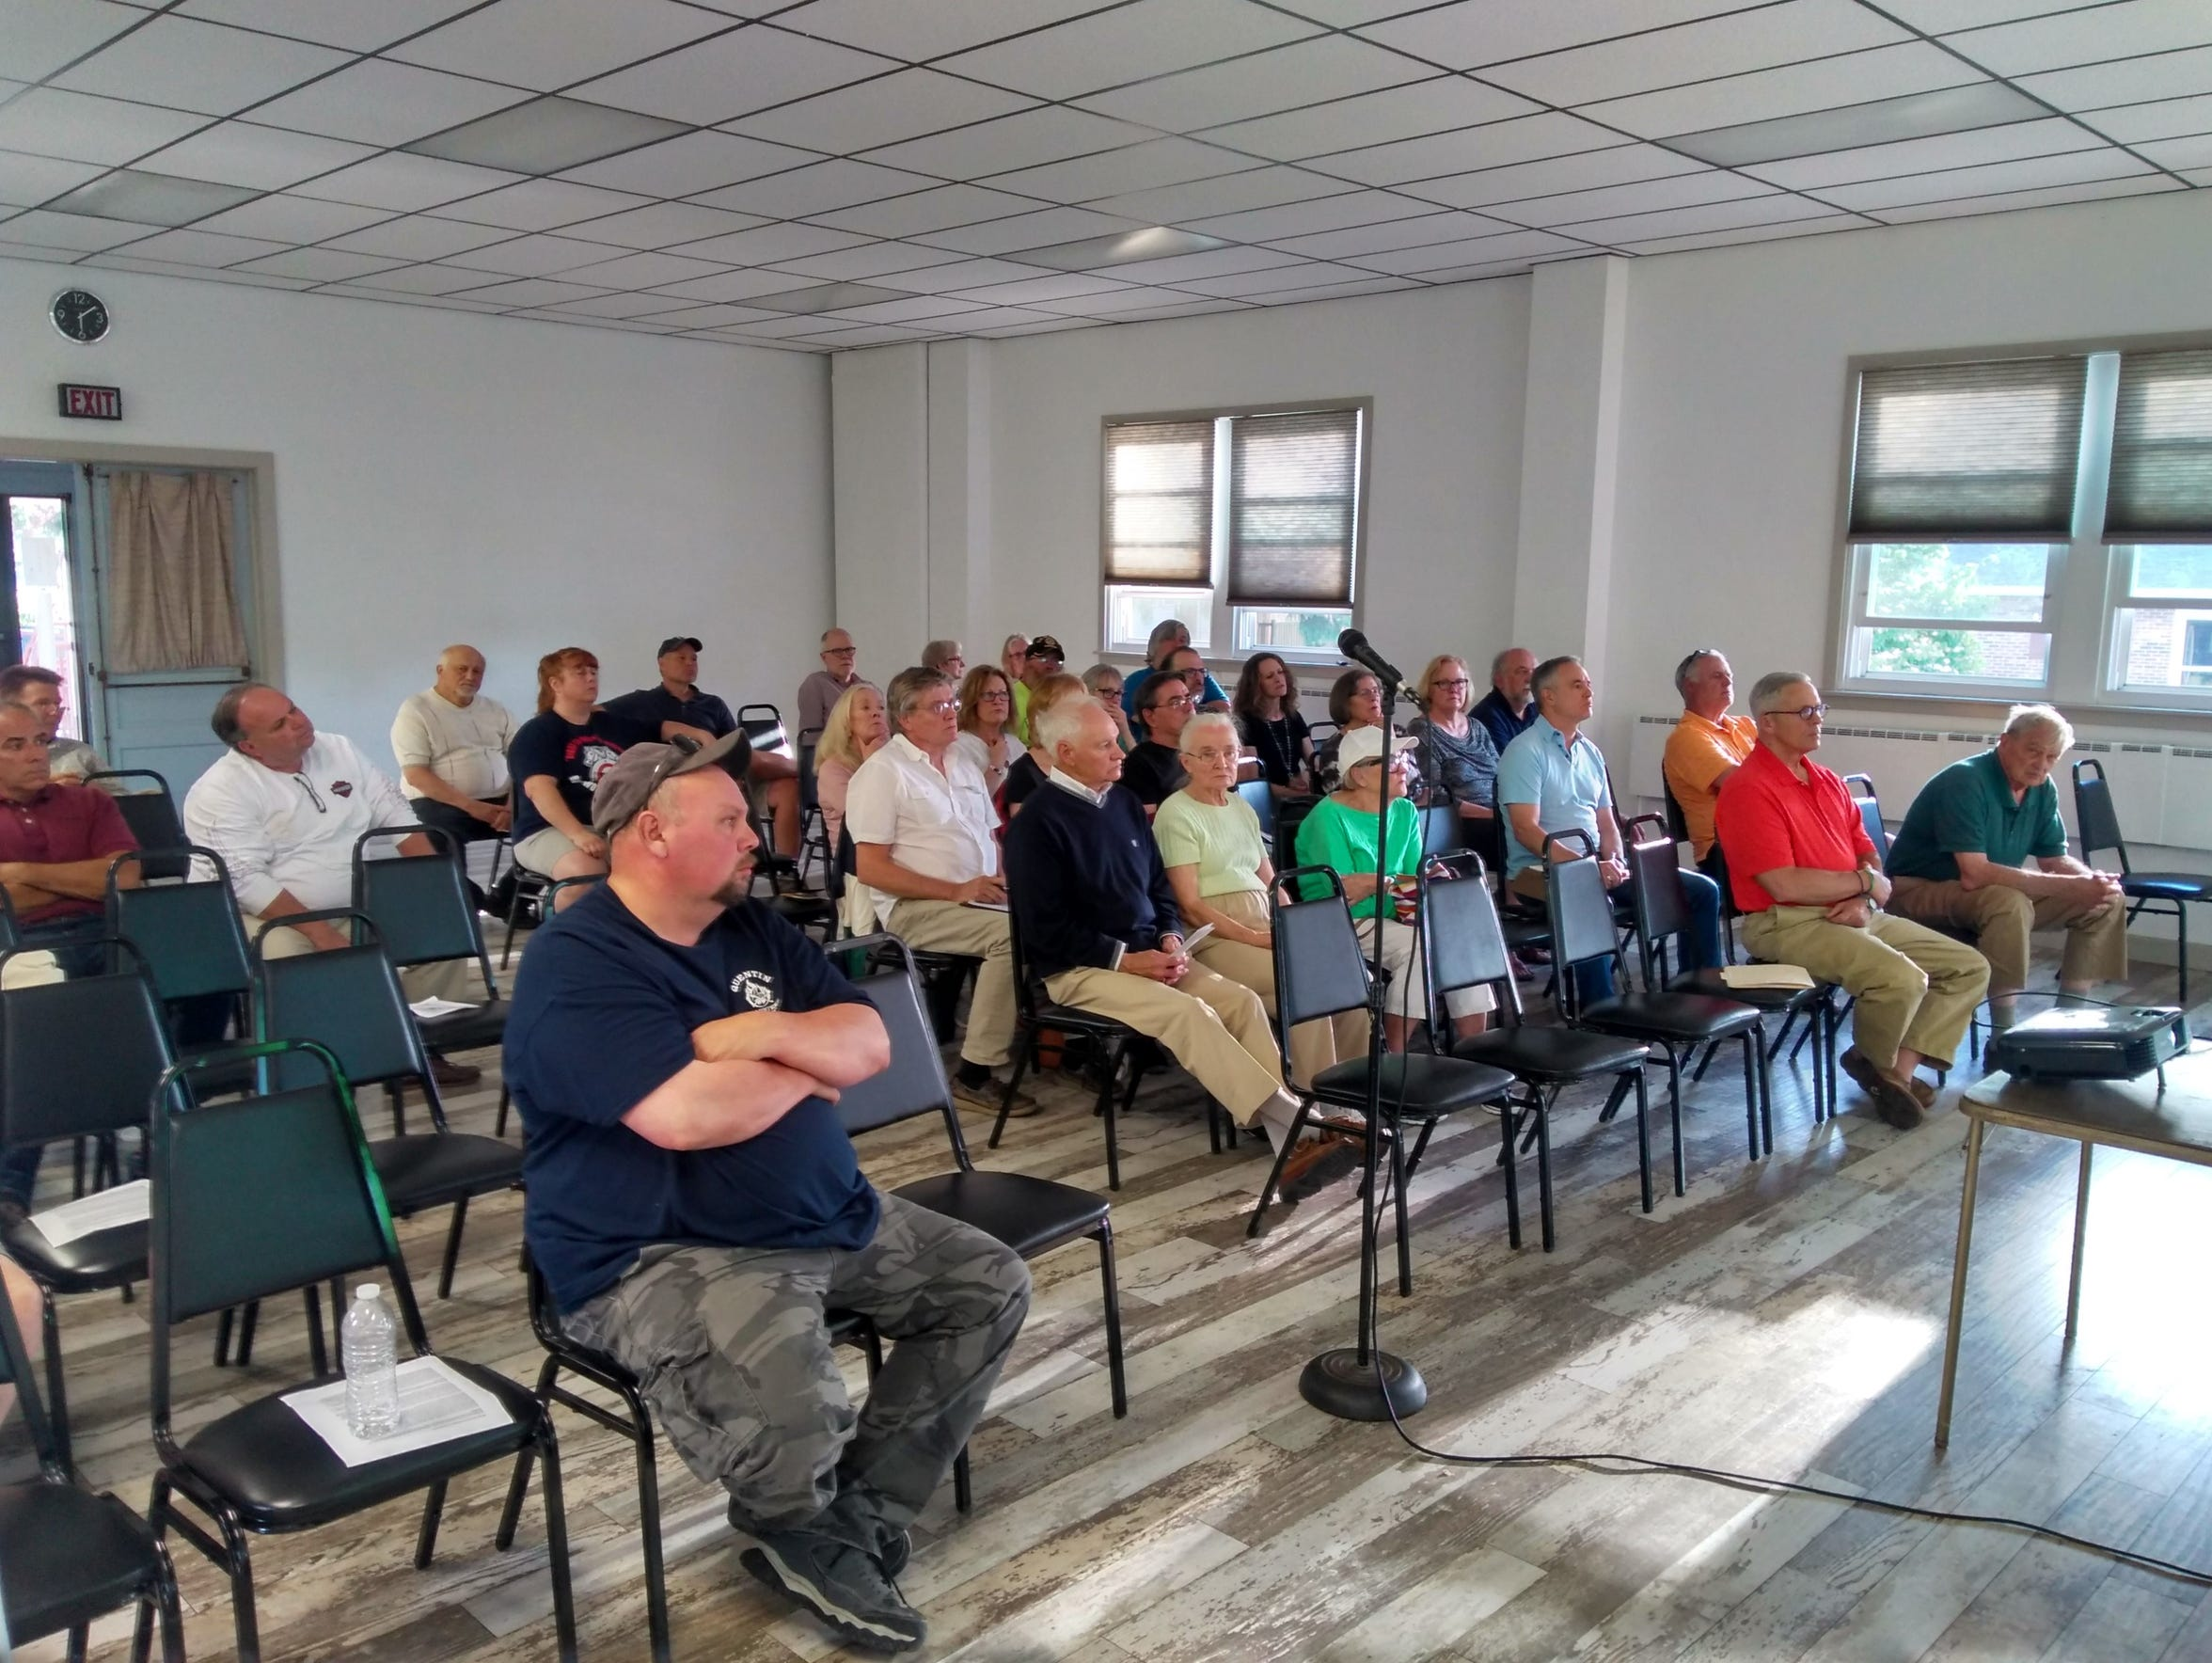 West Cornwall Township residents gave professionals